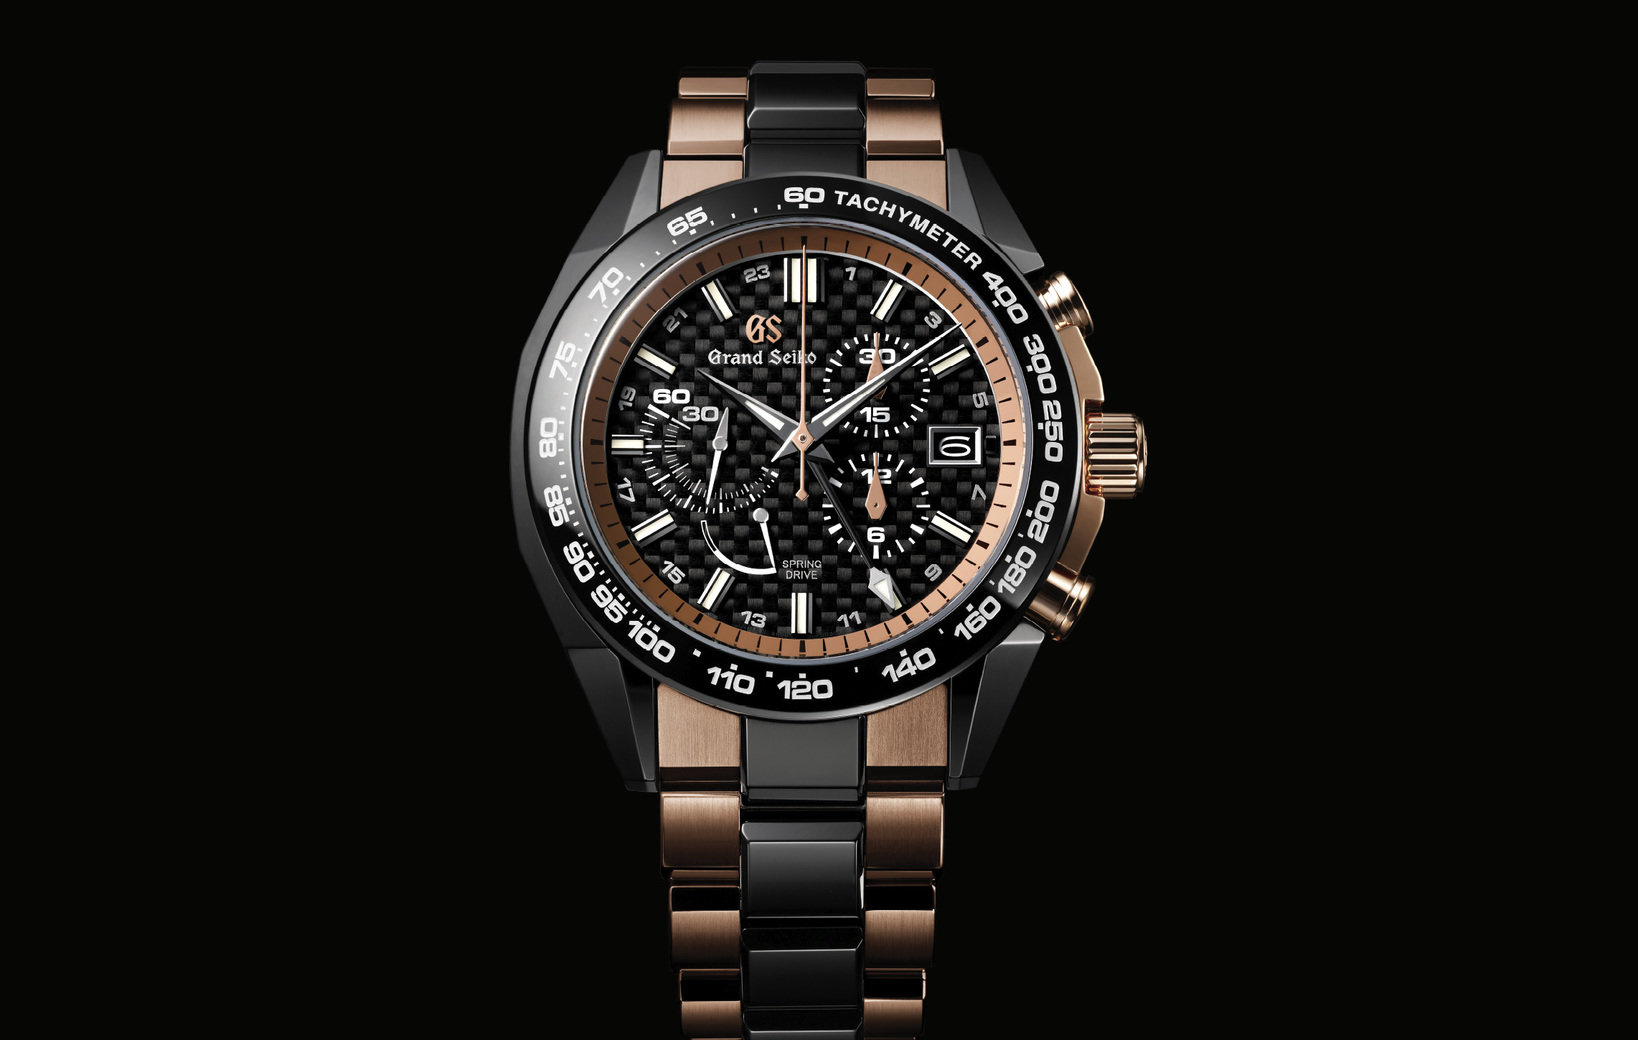 Grand Seiko Sport Collection Spring Drive Chronograph GMT featuring Nissan GT-R50 by Italdesign コンセプトモデル